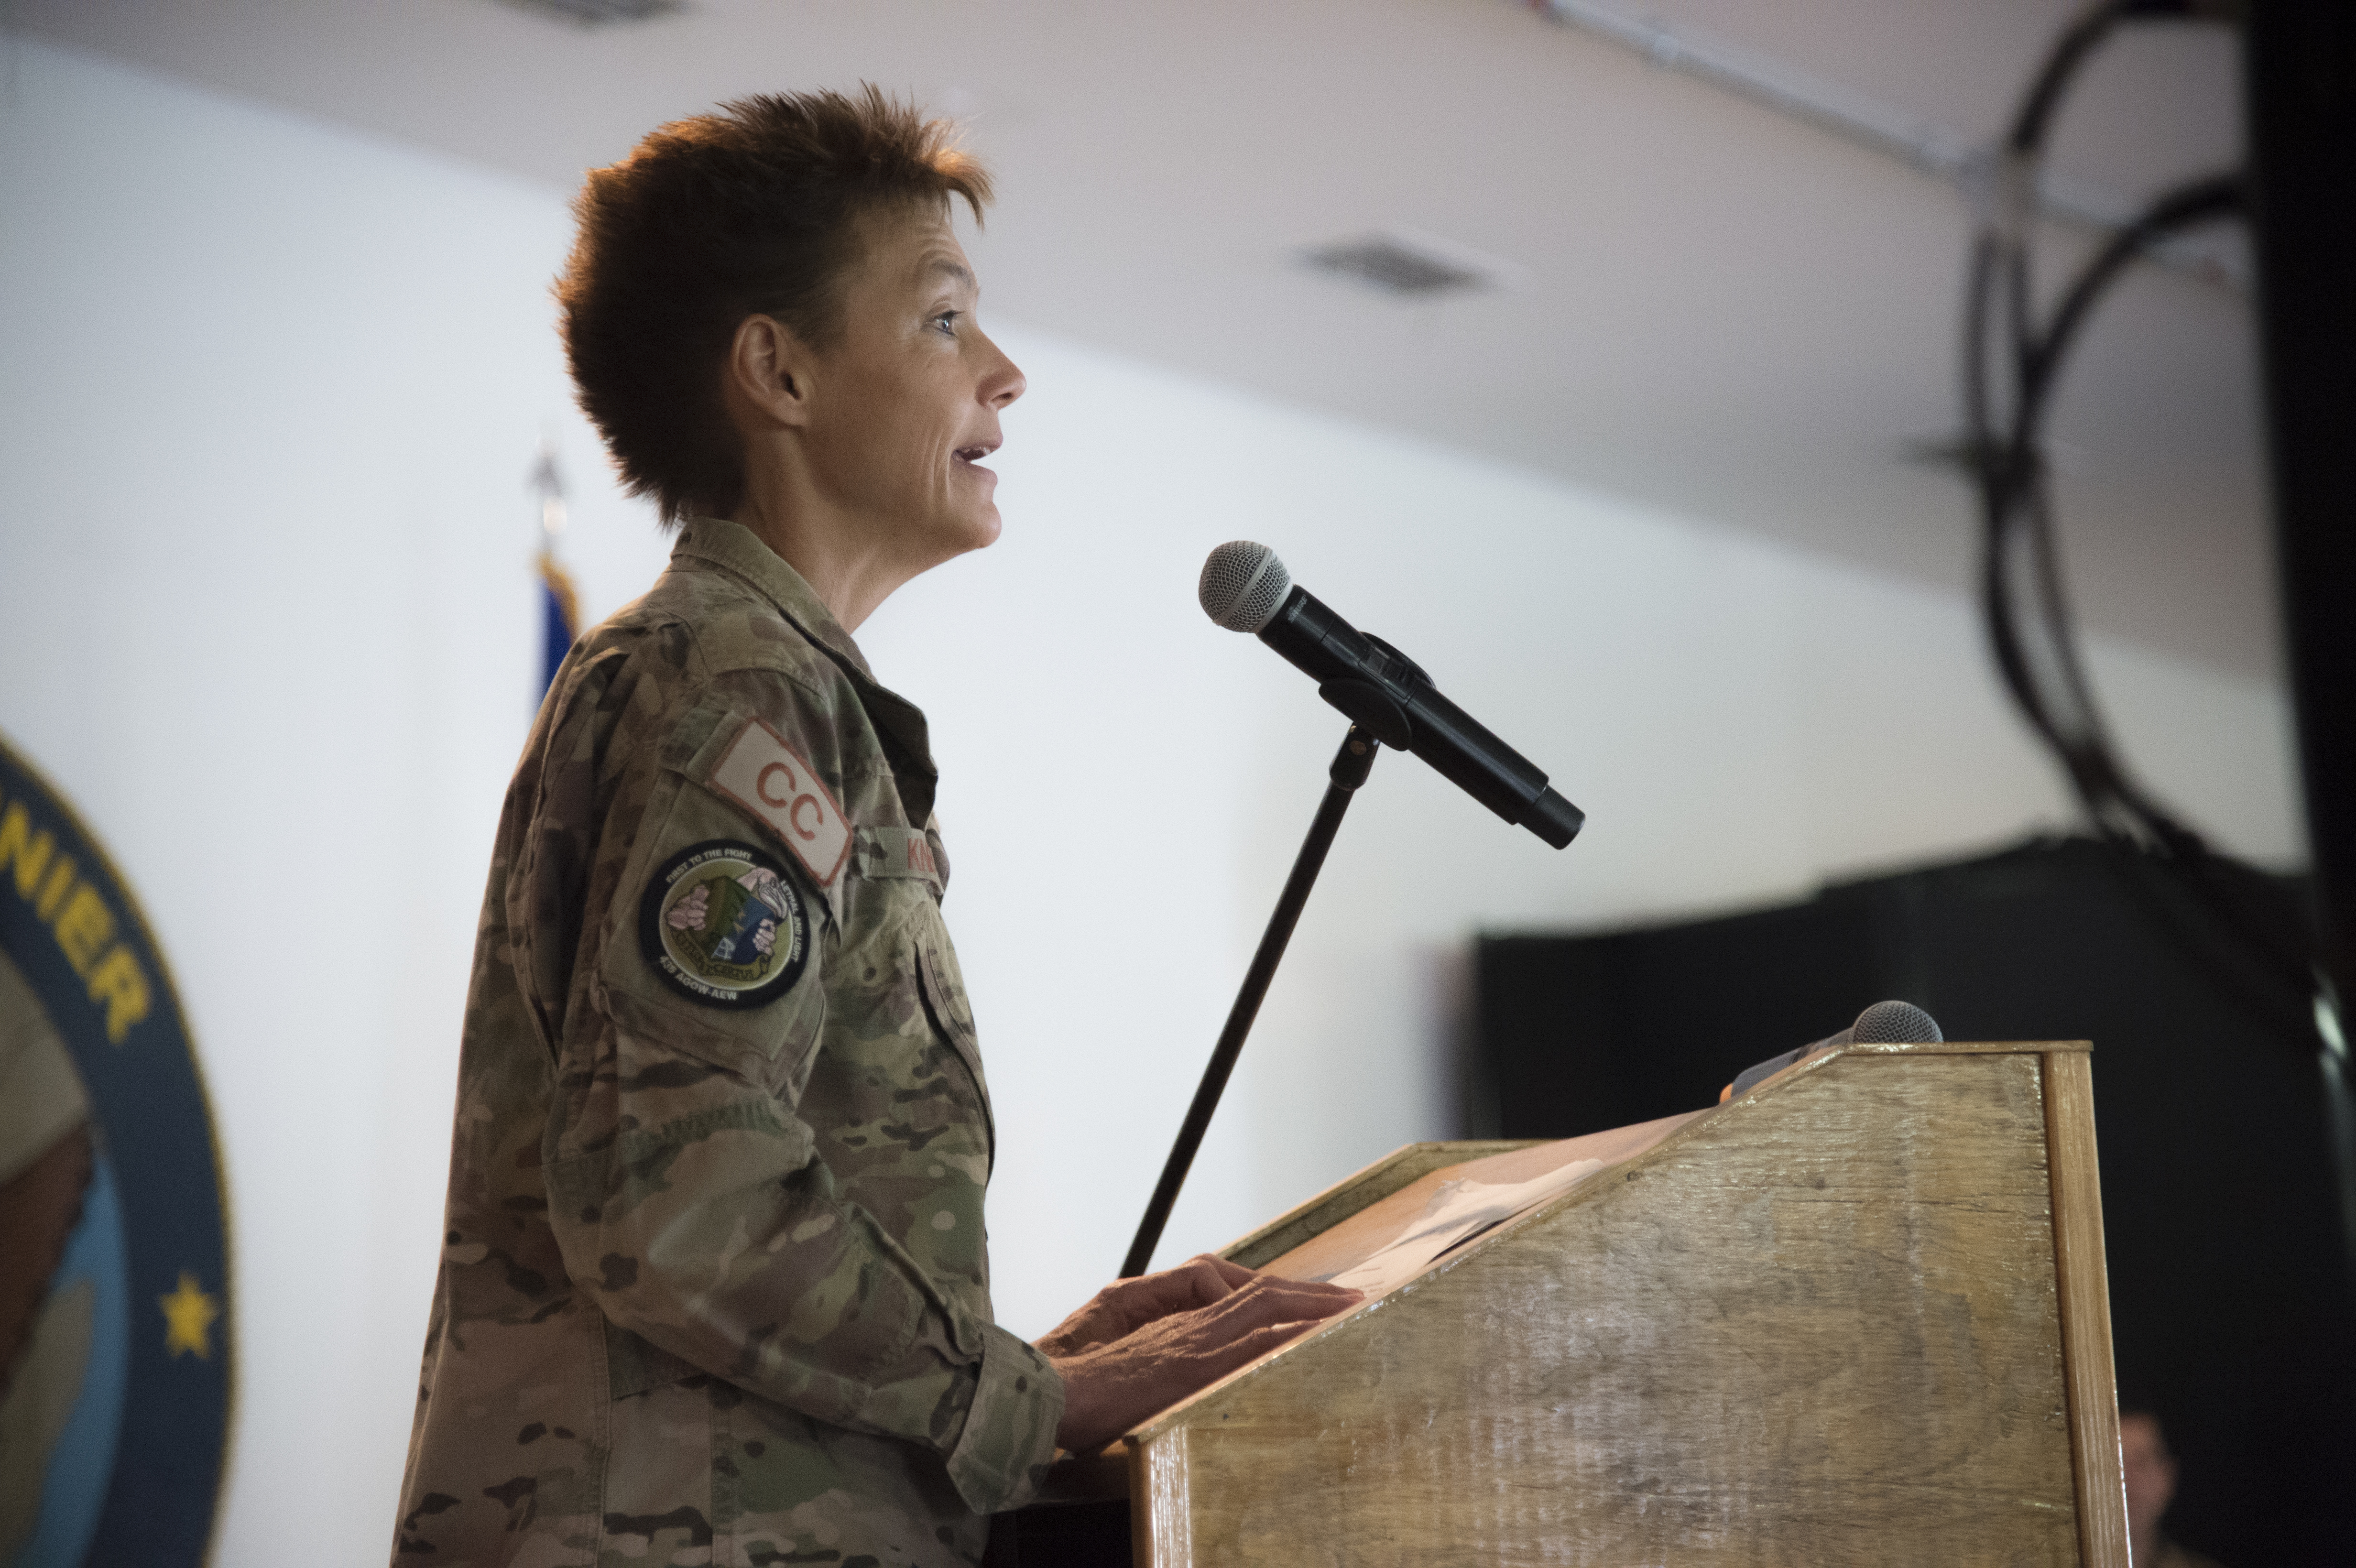 U.S. Air Force Col. Andra Kniep, 435th Air Expeditionary Wing commander, speaks to the crowd during the 449th AEG Change of Command ceremony June 9, 2017, at Camp Lemonnier, Djibouti. CJTF-HOA welcomes new 449th AEG commander  U.S. Air Force Col. Shawn Cochran, 449th Air Expeditionary Group incoming commander, is relieving U.S. Air Force Col. Michael Bruzzini who has served as the 449th AEG Commander since June 6, 2016. The passing of the flag is a military tradition signifying the change of authority and responsibility of a unit from one commander to another. (U.S. Air National Guard Photo by Tech. Sgt. Joe Harwood)